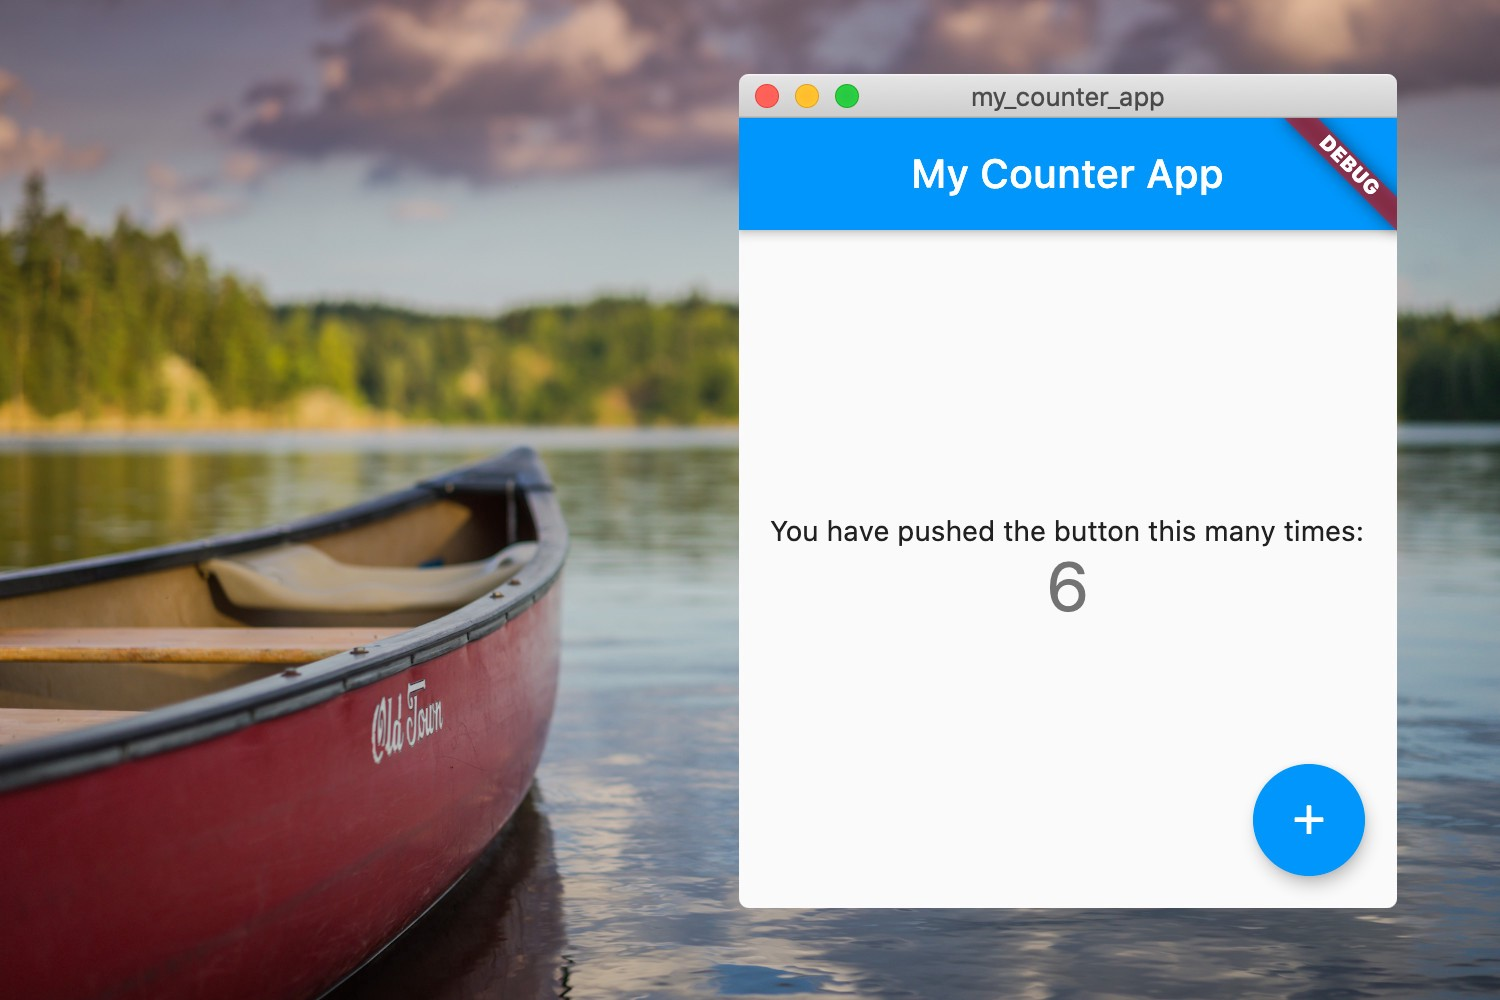 Flutter Riverpod tutorial: Counter app